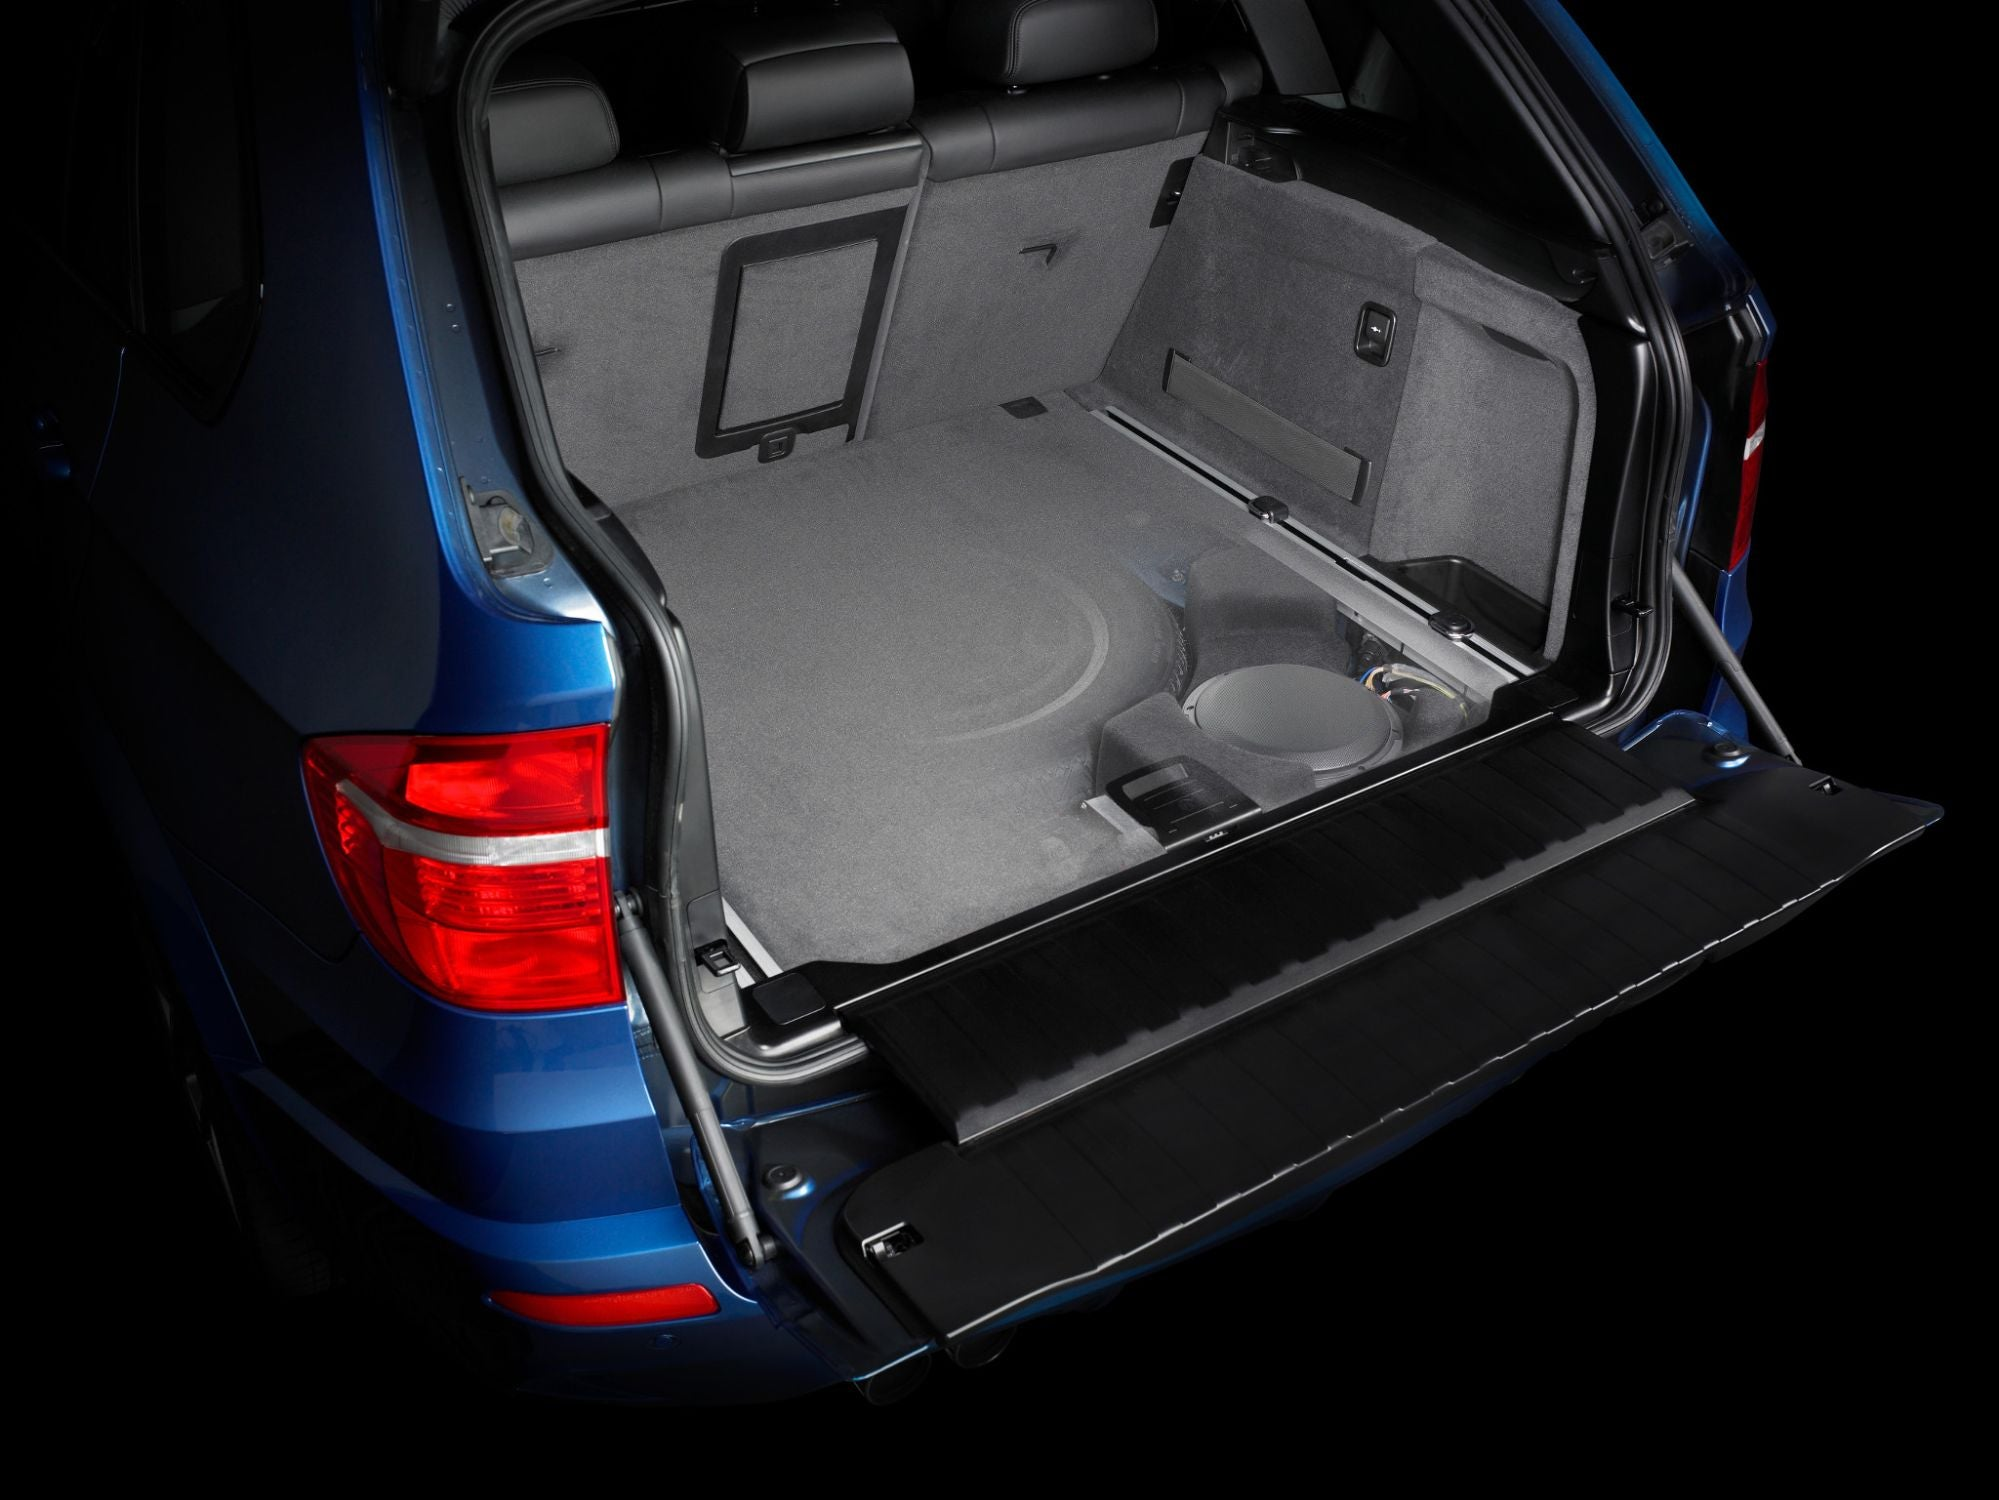 SB-B-X5E70-10W3v3 Stealthbox Installed in Vehicle